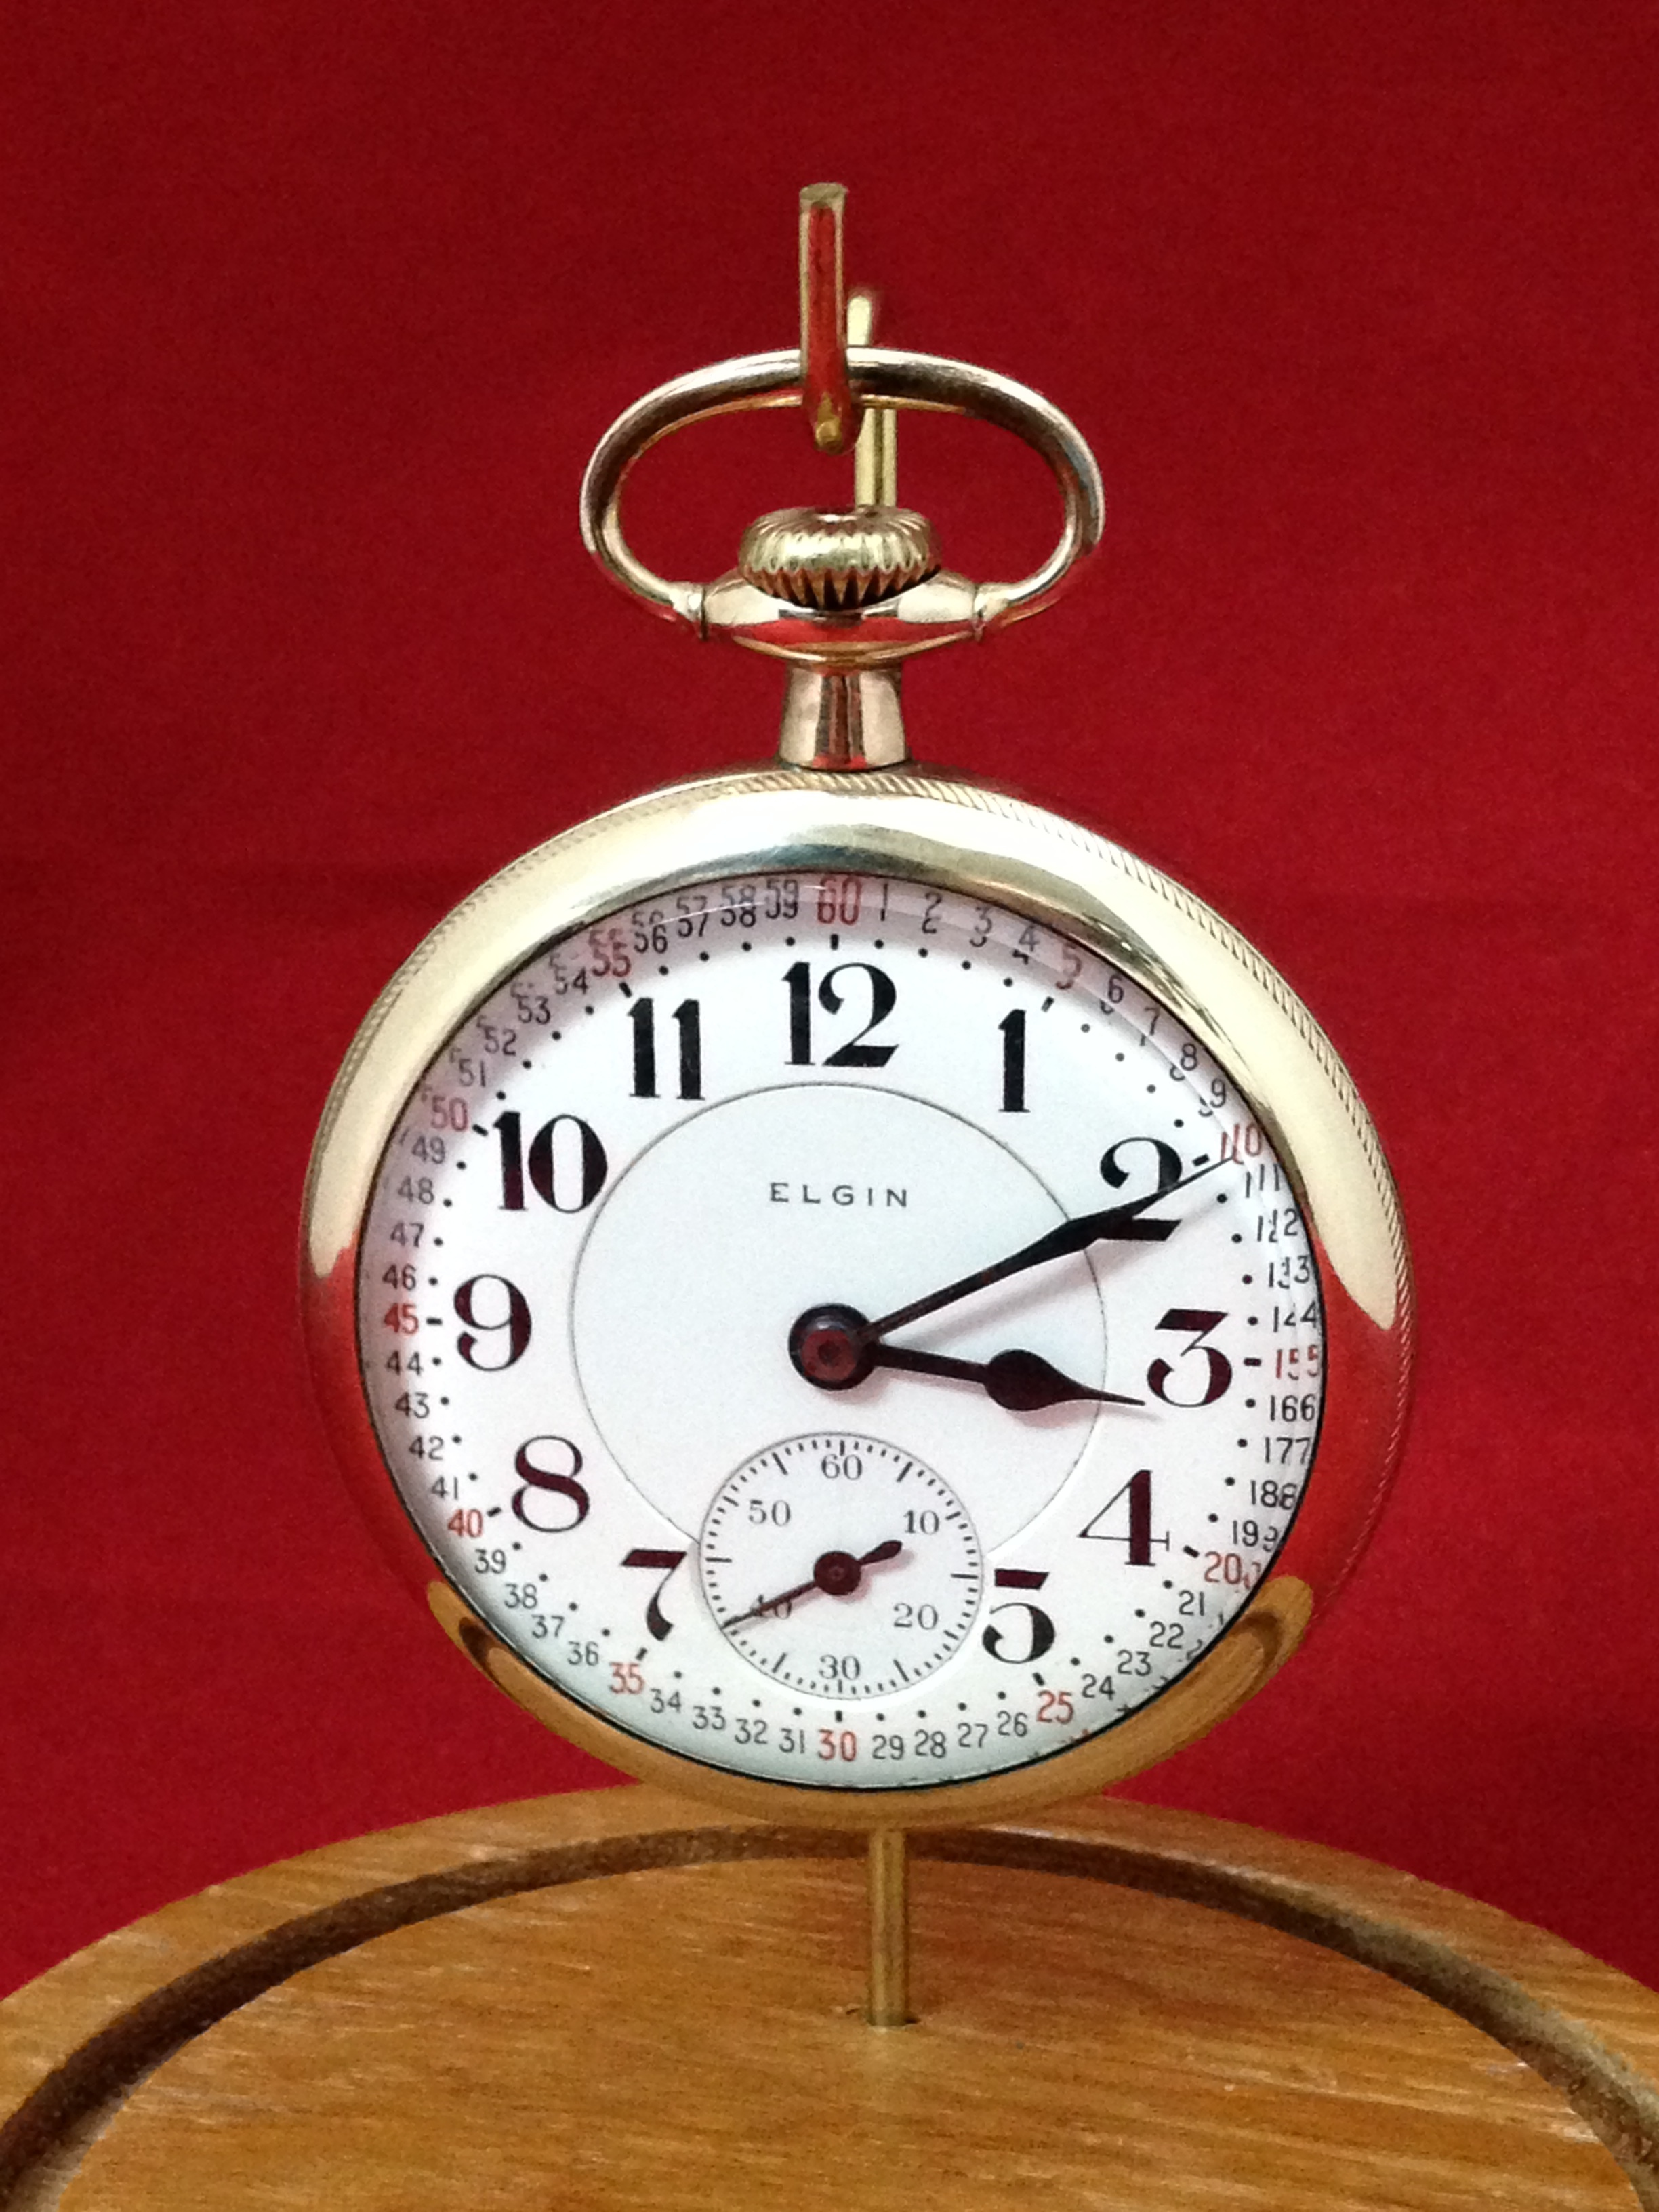 Elgin (Father Time) Pocket Watch